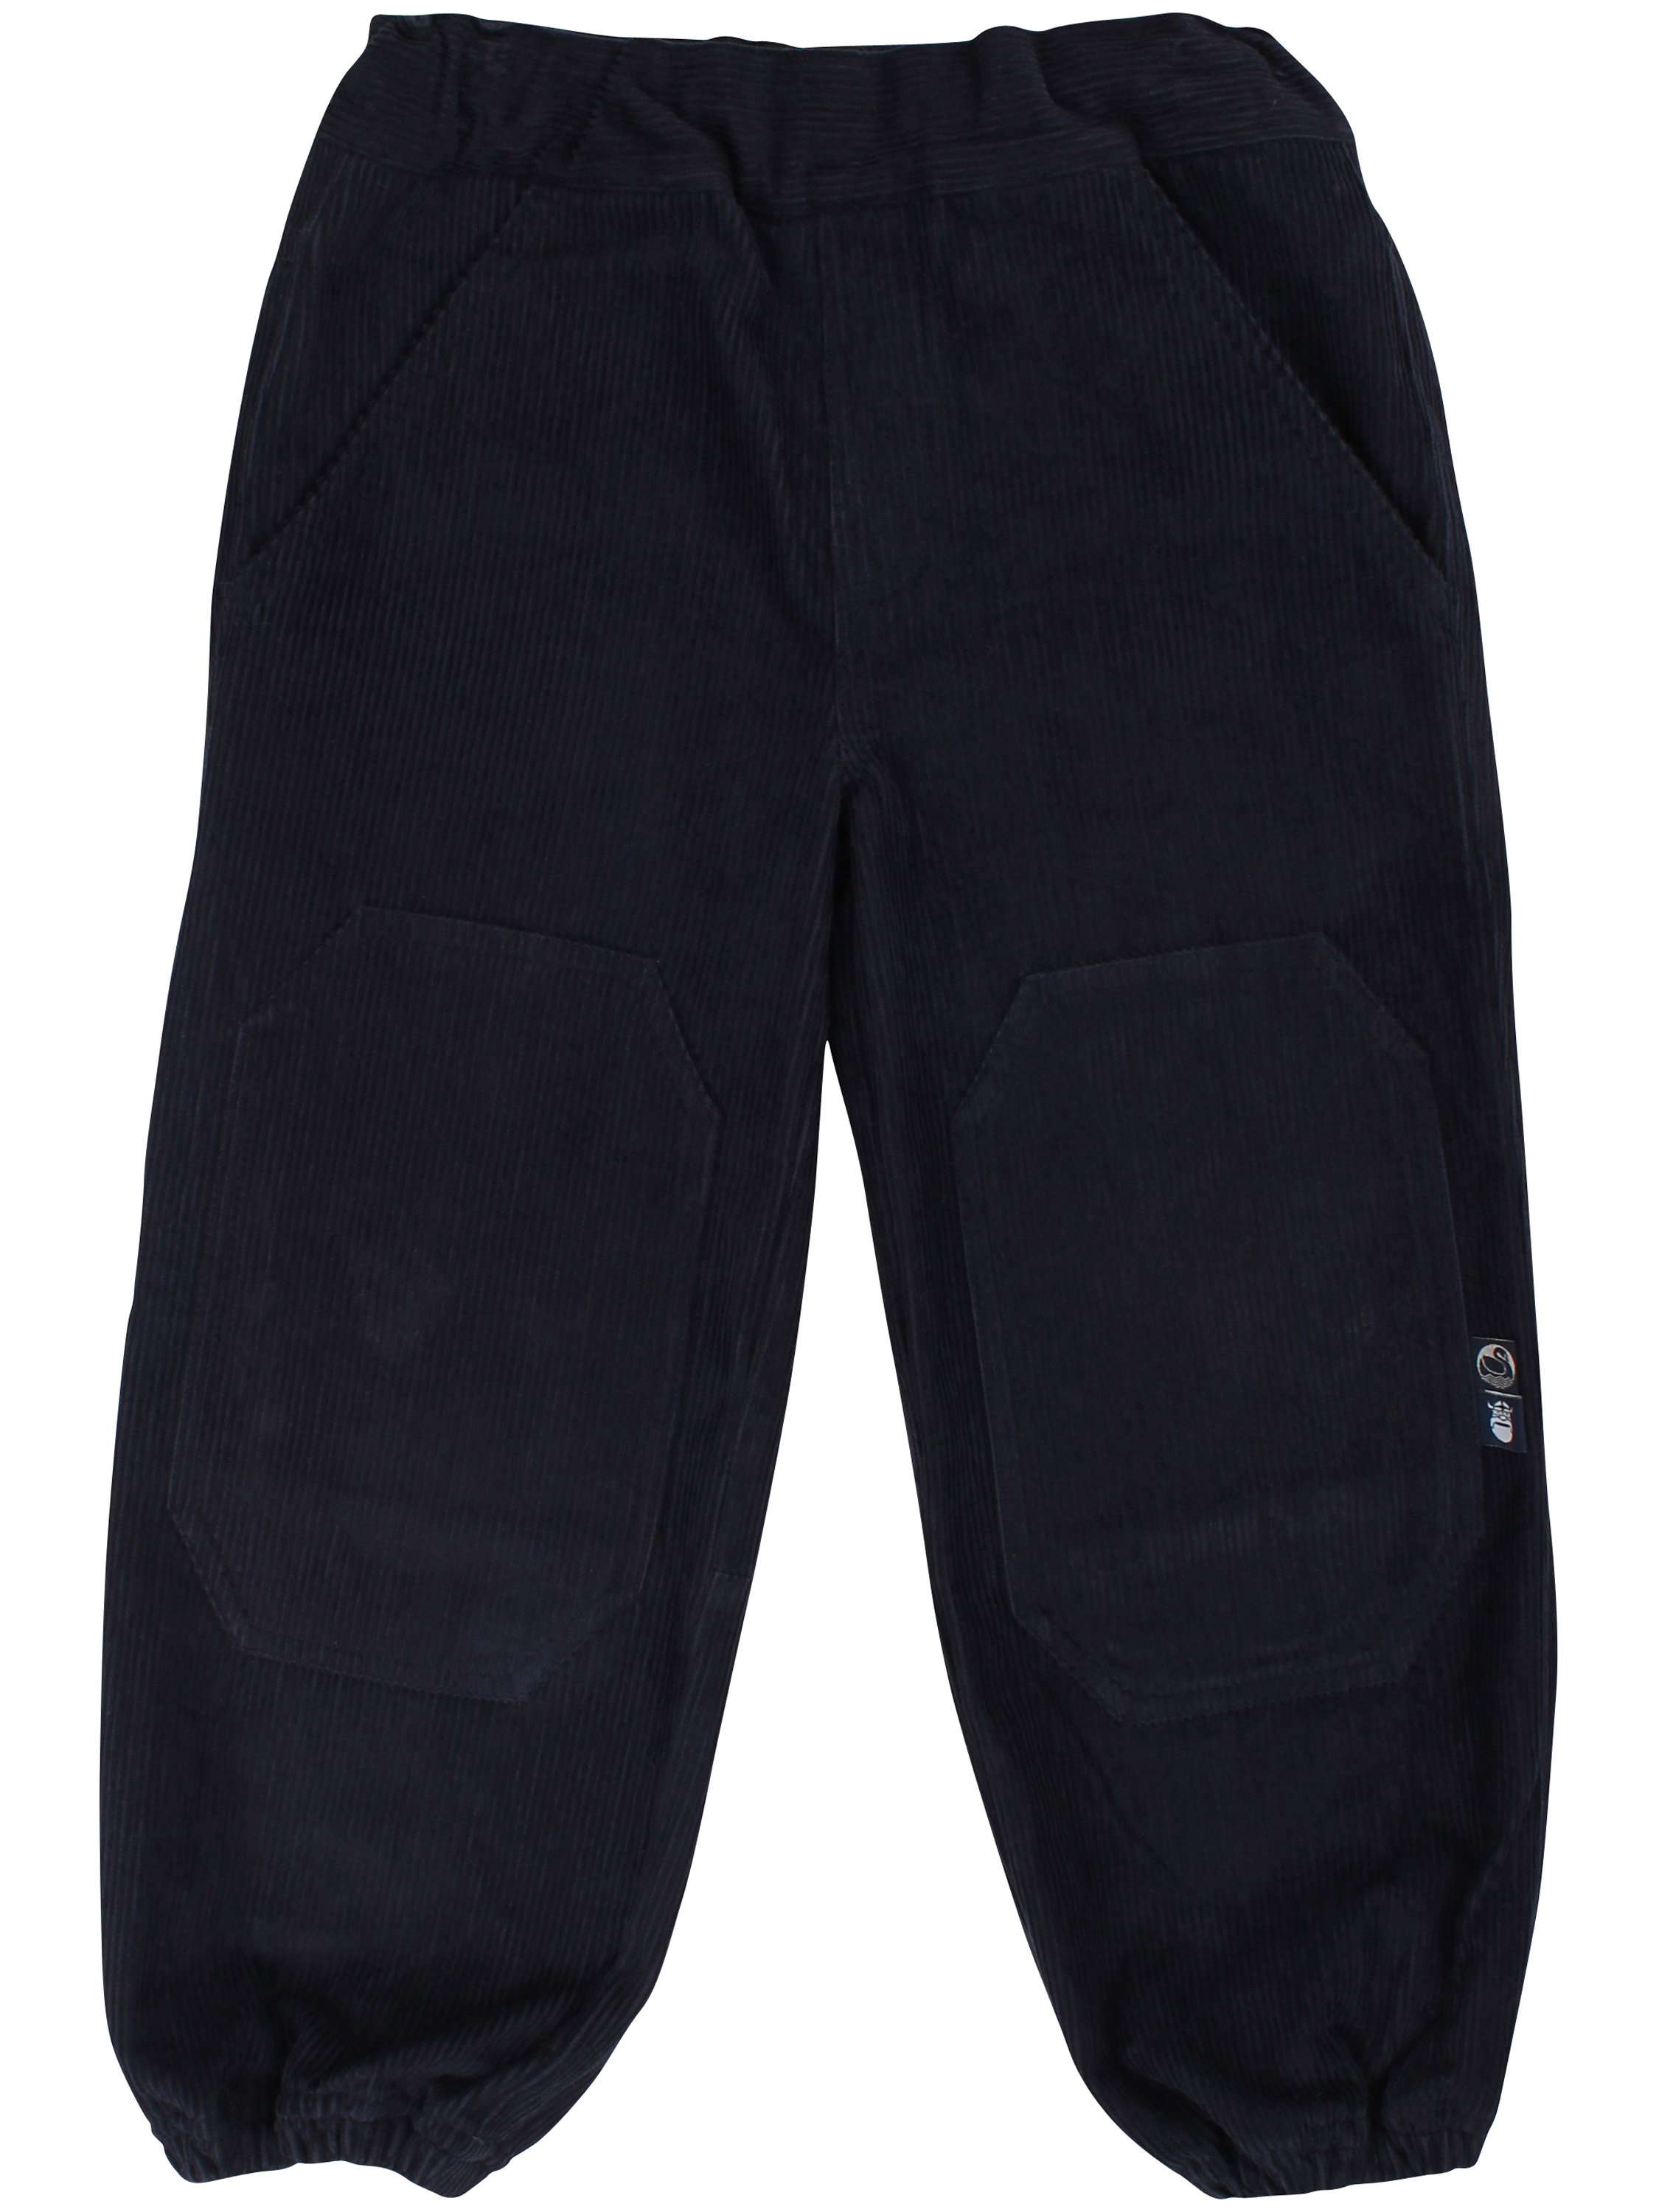 Danefae Boy Hose Katholt Cord dark navy